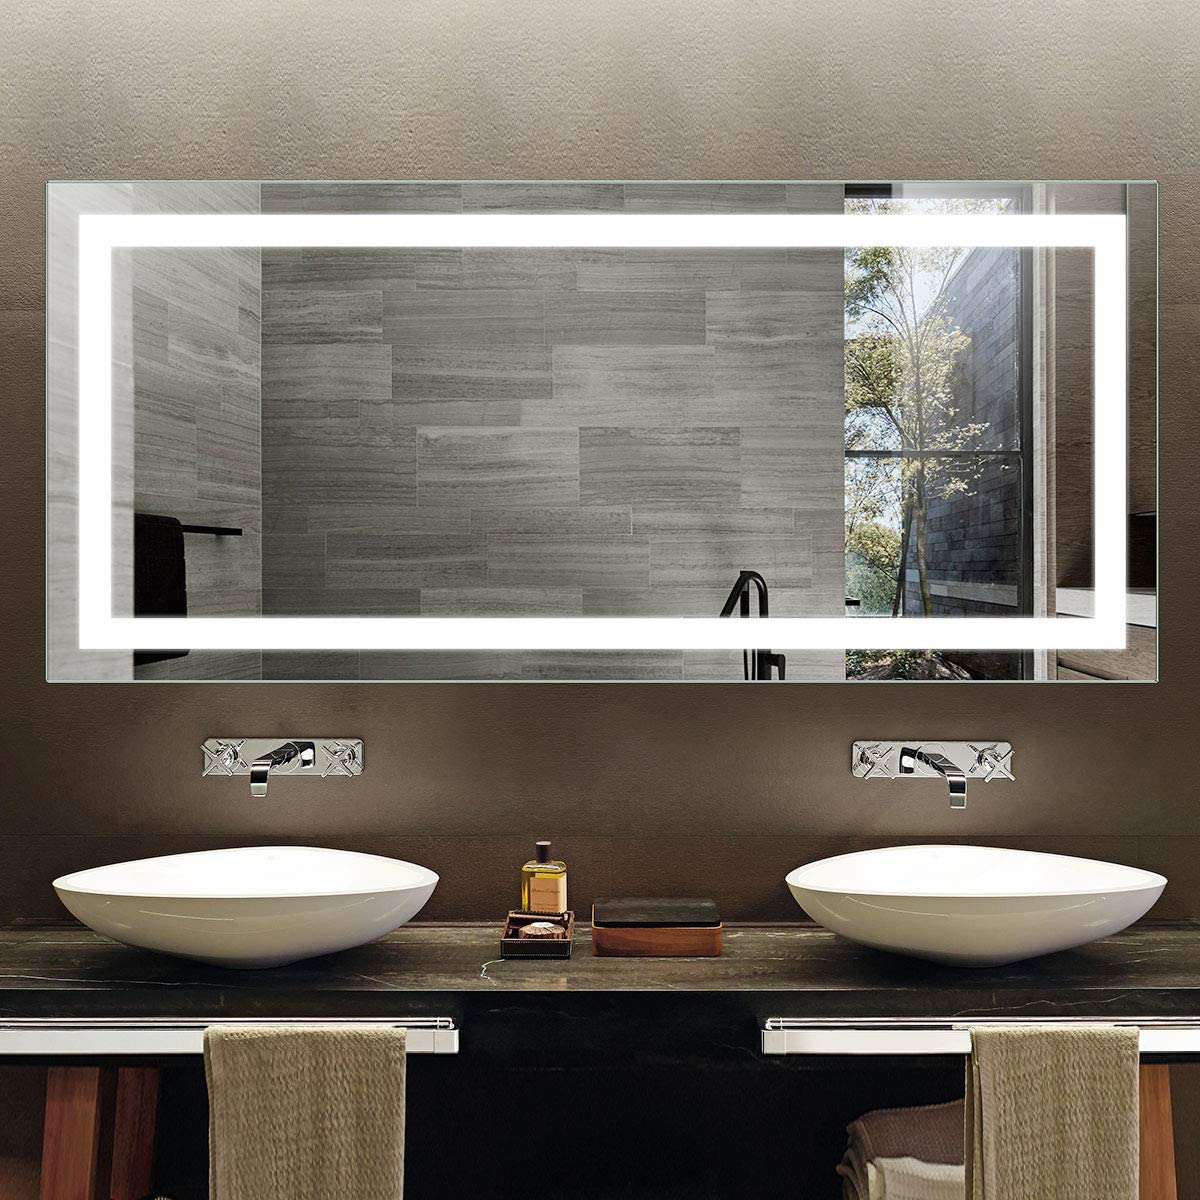 DP Home Illuminated Bathroom Mirror, Wall Mounted Frameless Vanity Mirror with Infrared Sensor, 71 x 32 in E-CK010-AG